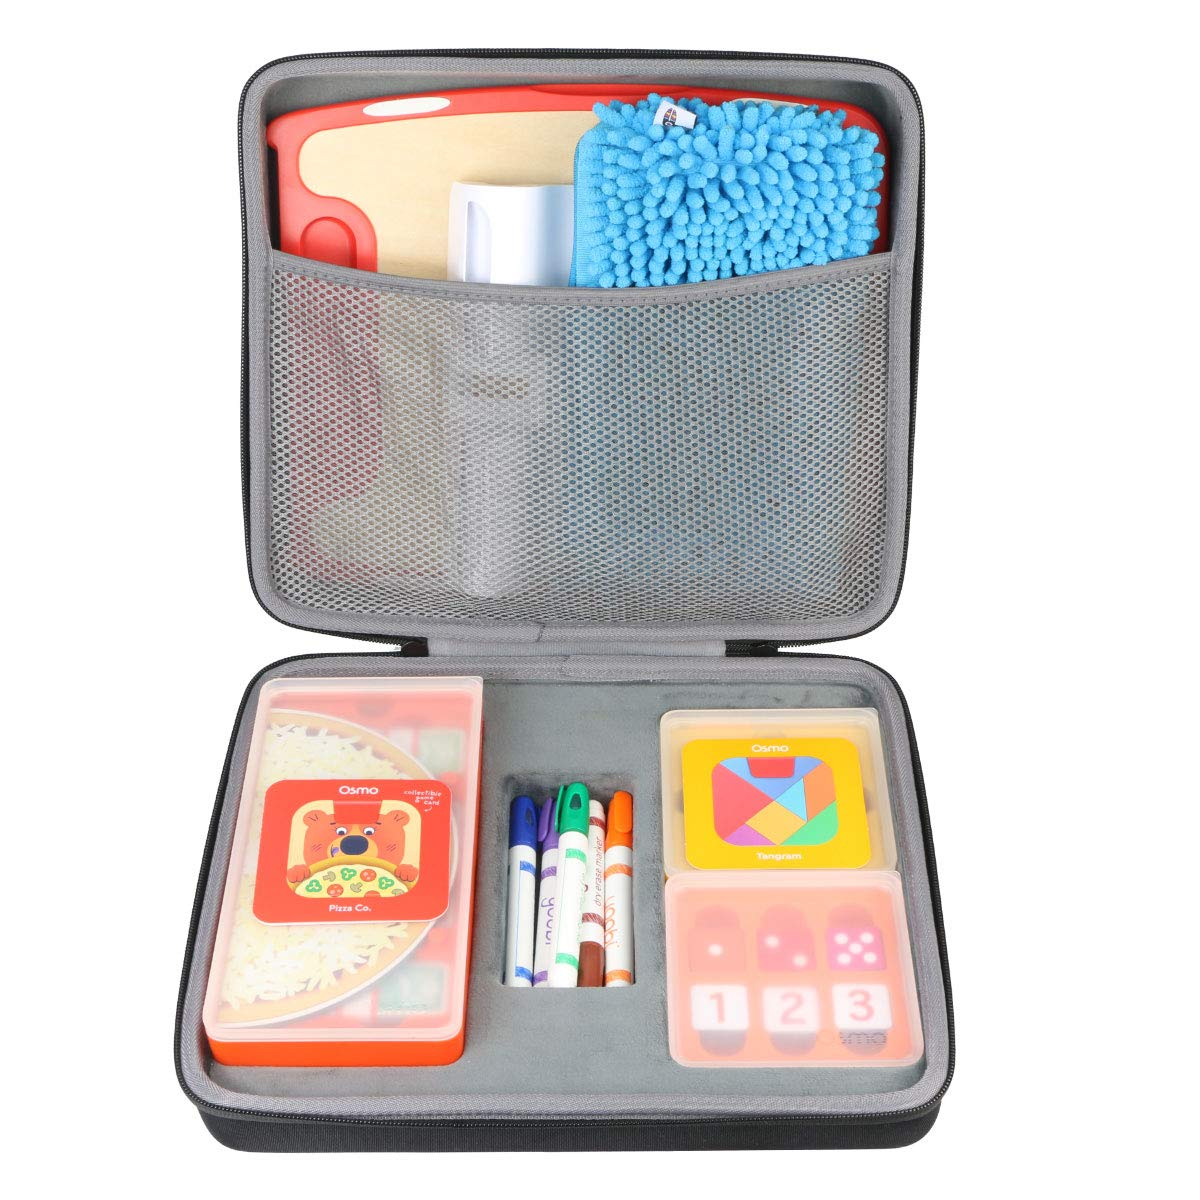 Co2Crea Organizer Case Replacement for OSMO Creative Set (fits Monster Game/Coding Jam/Coding Awbie Game/Starter Kit/Genius kit, Can't to fit The Fire Tablet) by Co2Crea (Image #1)